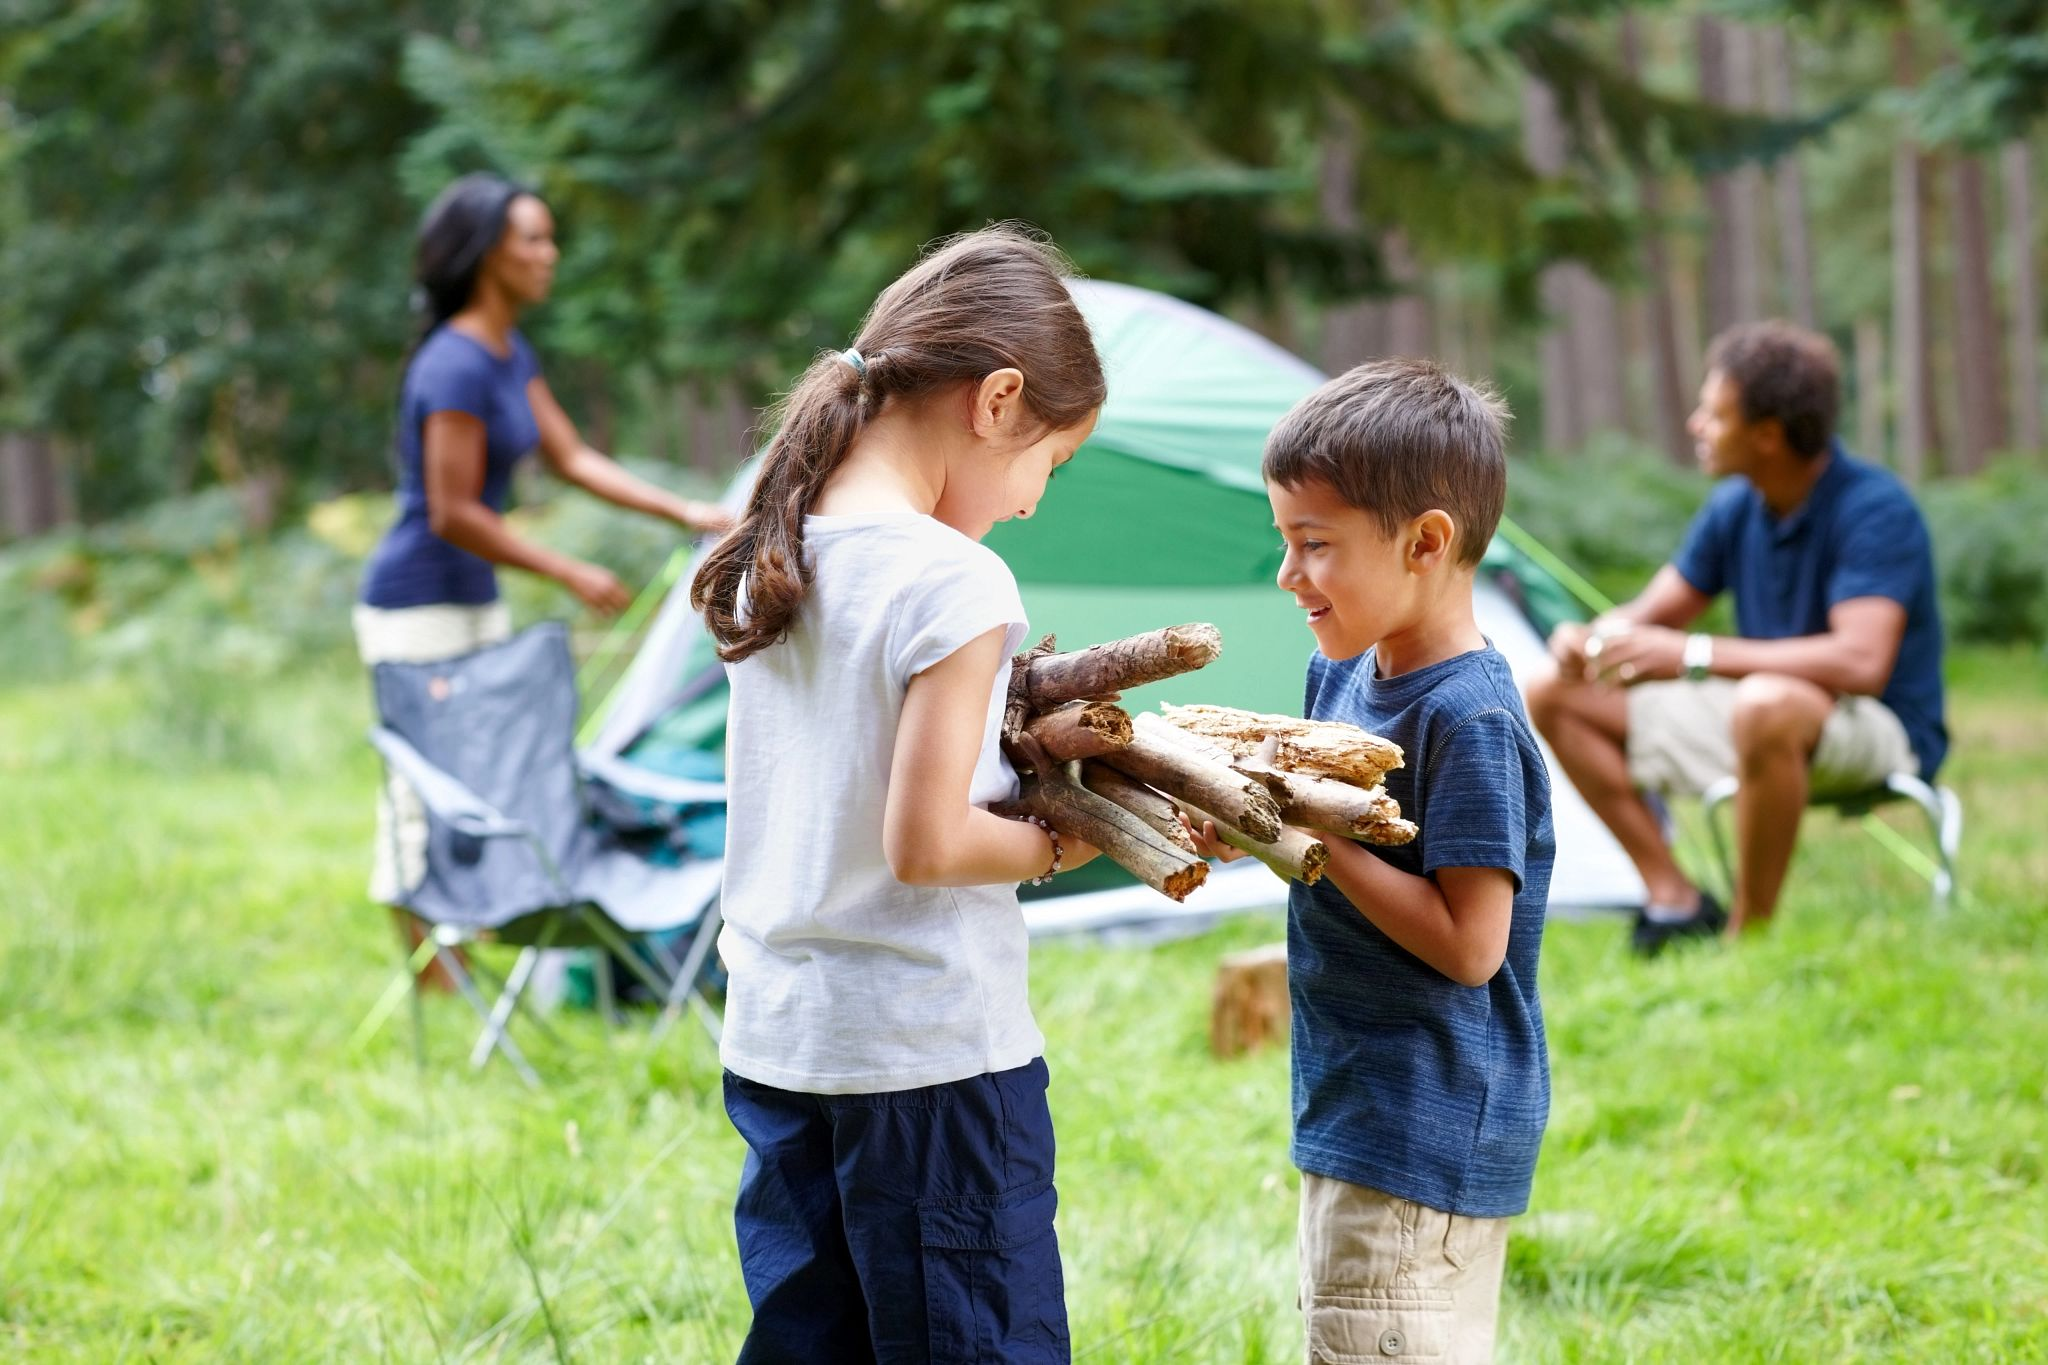 An image of a child handing firewood to another child.